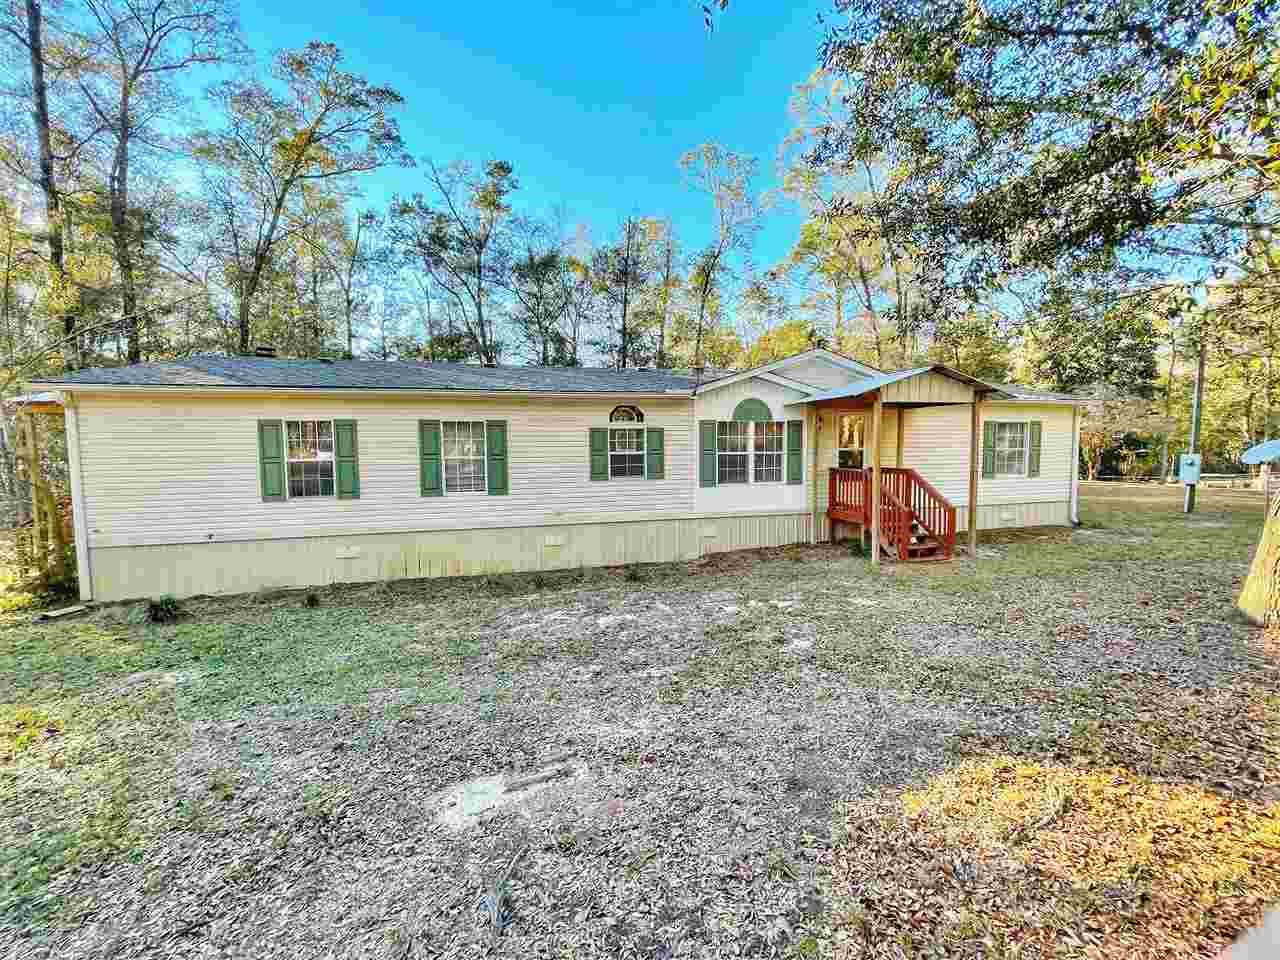 201 Mallard Lane, Monticello, FL 32344 - MLS#: 327597